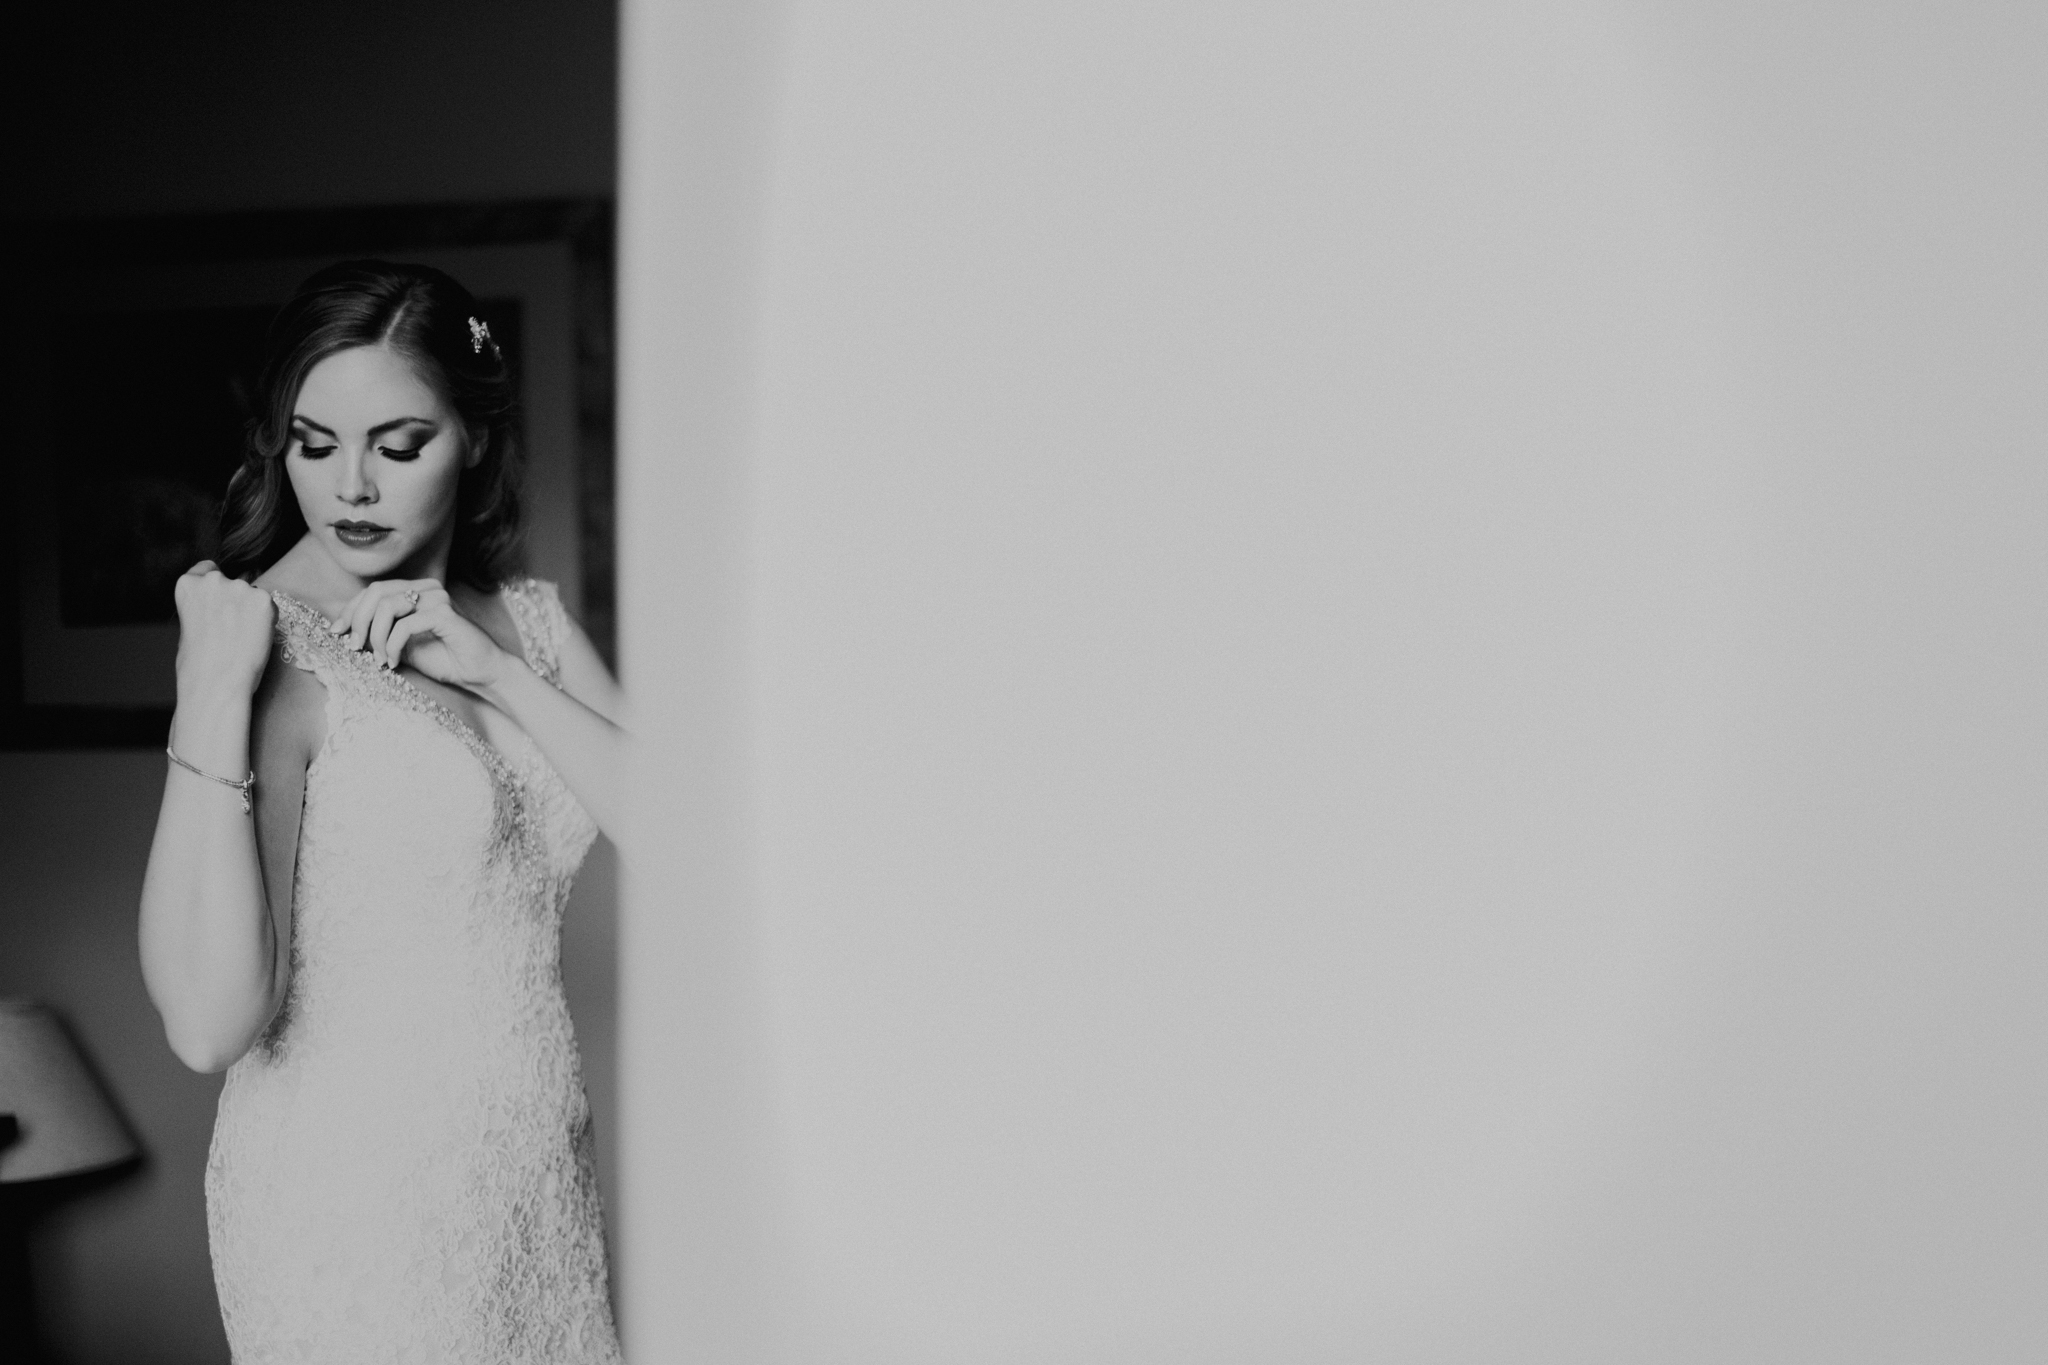 Bride putting on wedding dress black and white photo